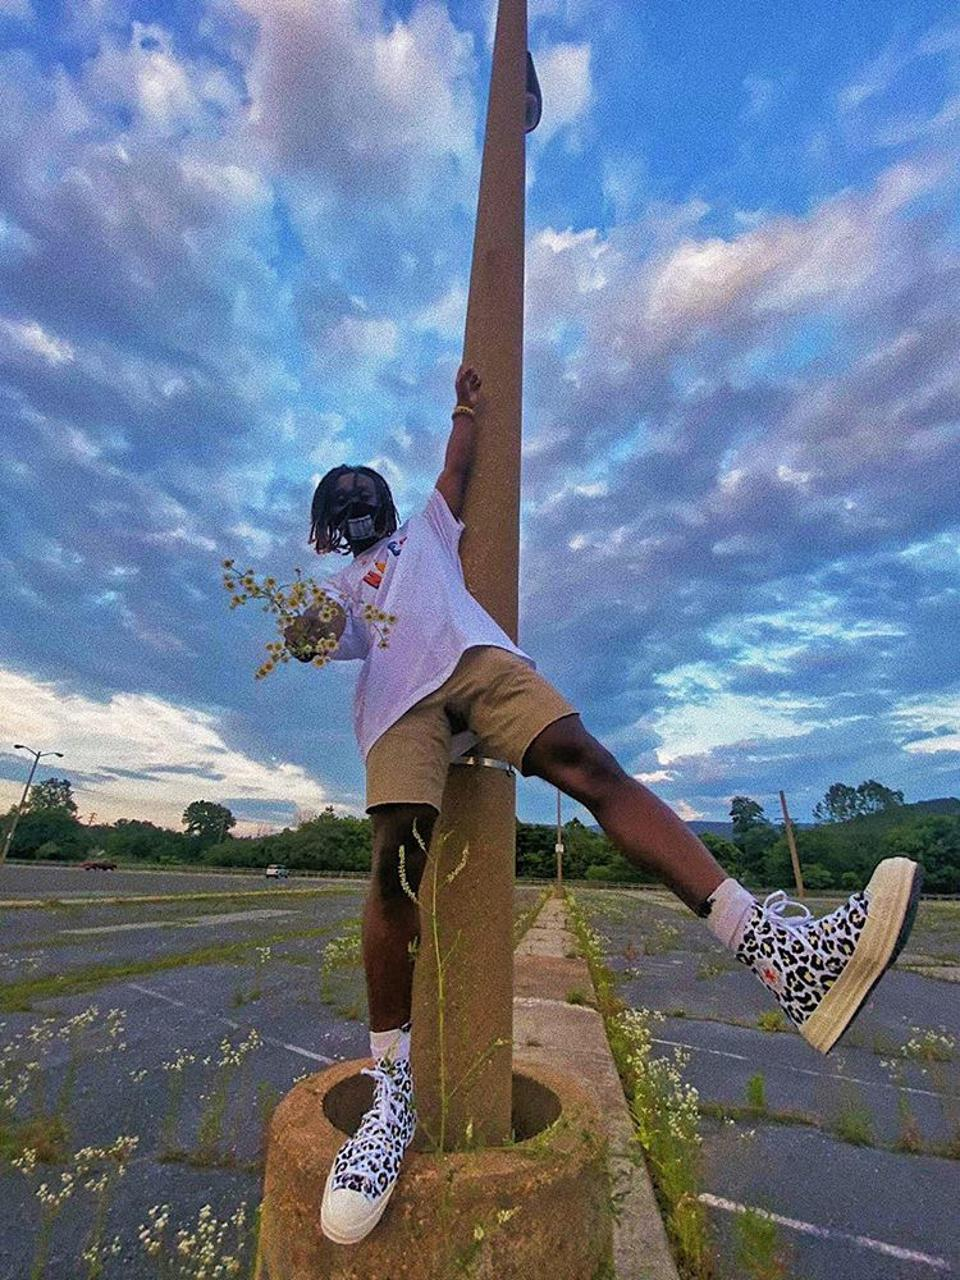 A young Black man playing on a pole.